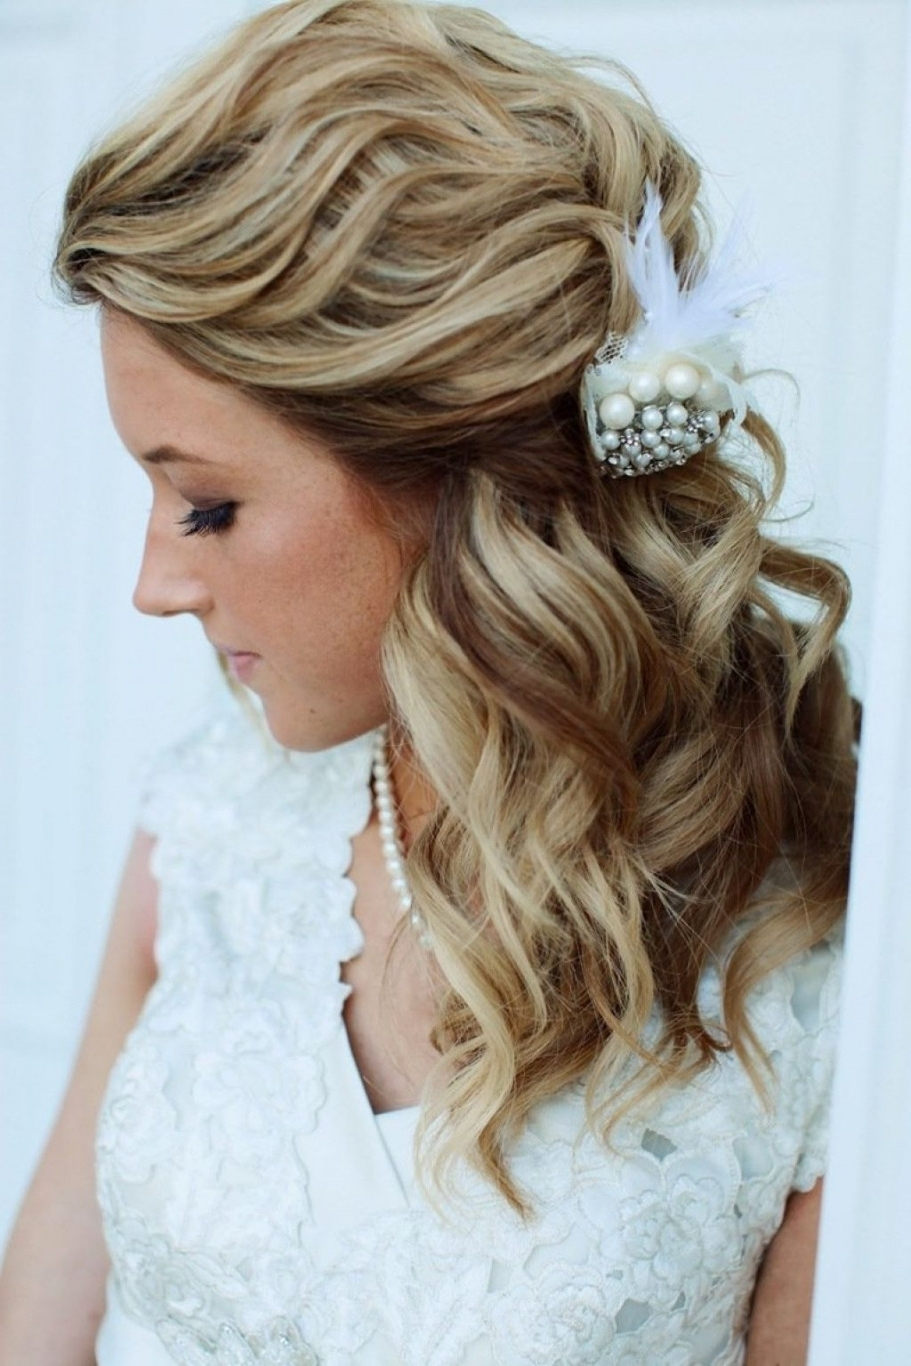 √ 24+ Awesome Wedding Hairstyles For Shoulder Length Hair: Cute With Regard To Best And Newest Wedding Hairstyles For Shoulder Length Layered Hair (View 1 of 15)